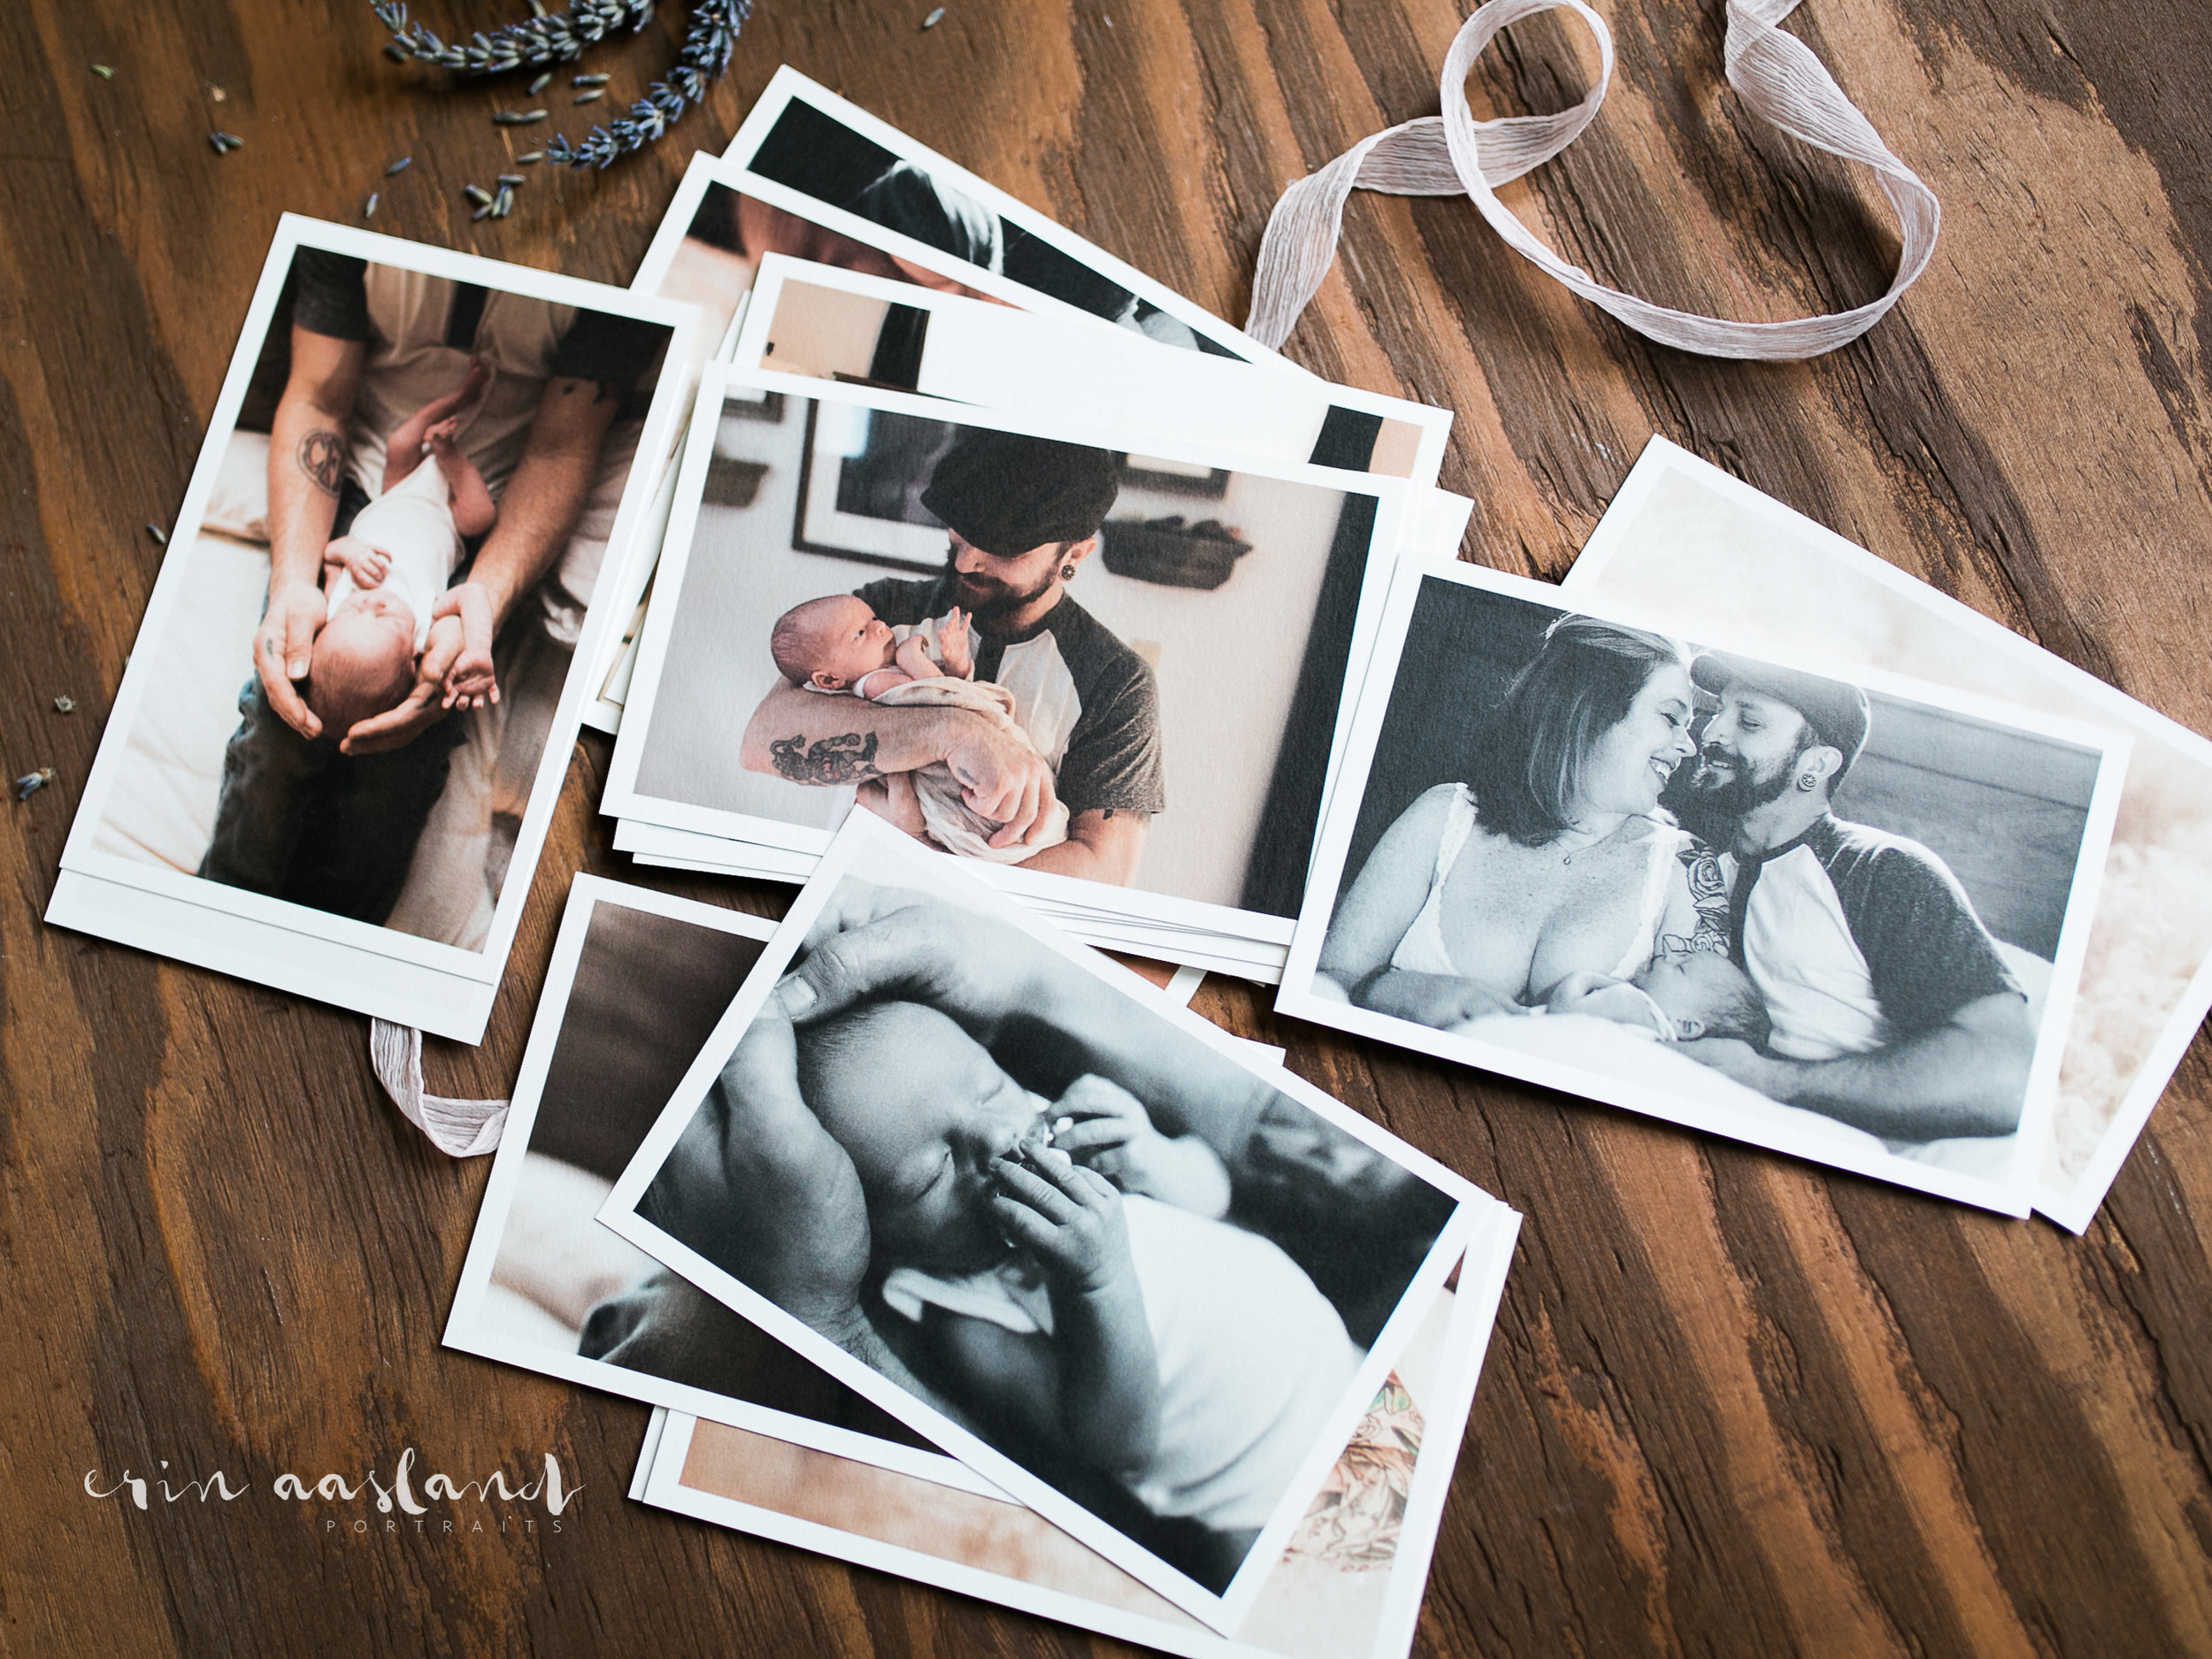 Erin Aasland Newborn Photographer Collection in Print